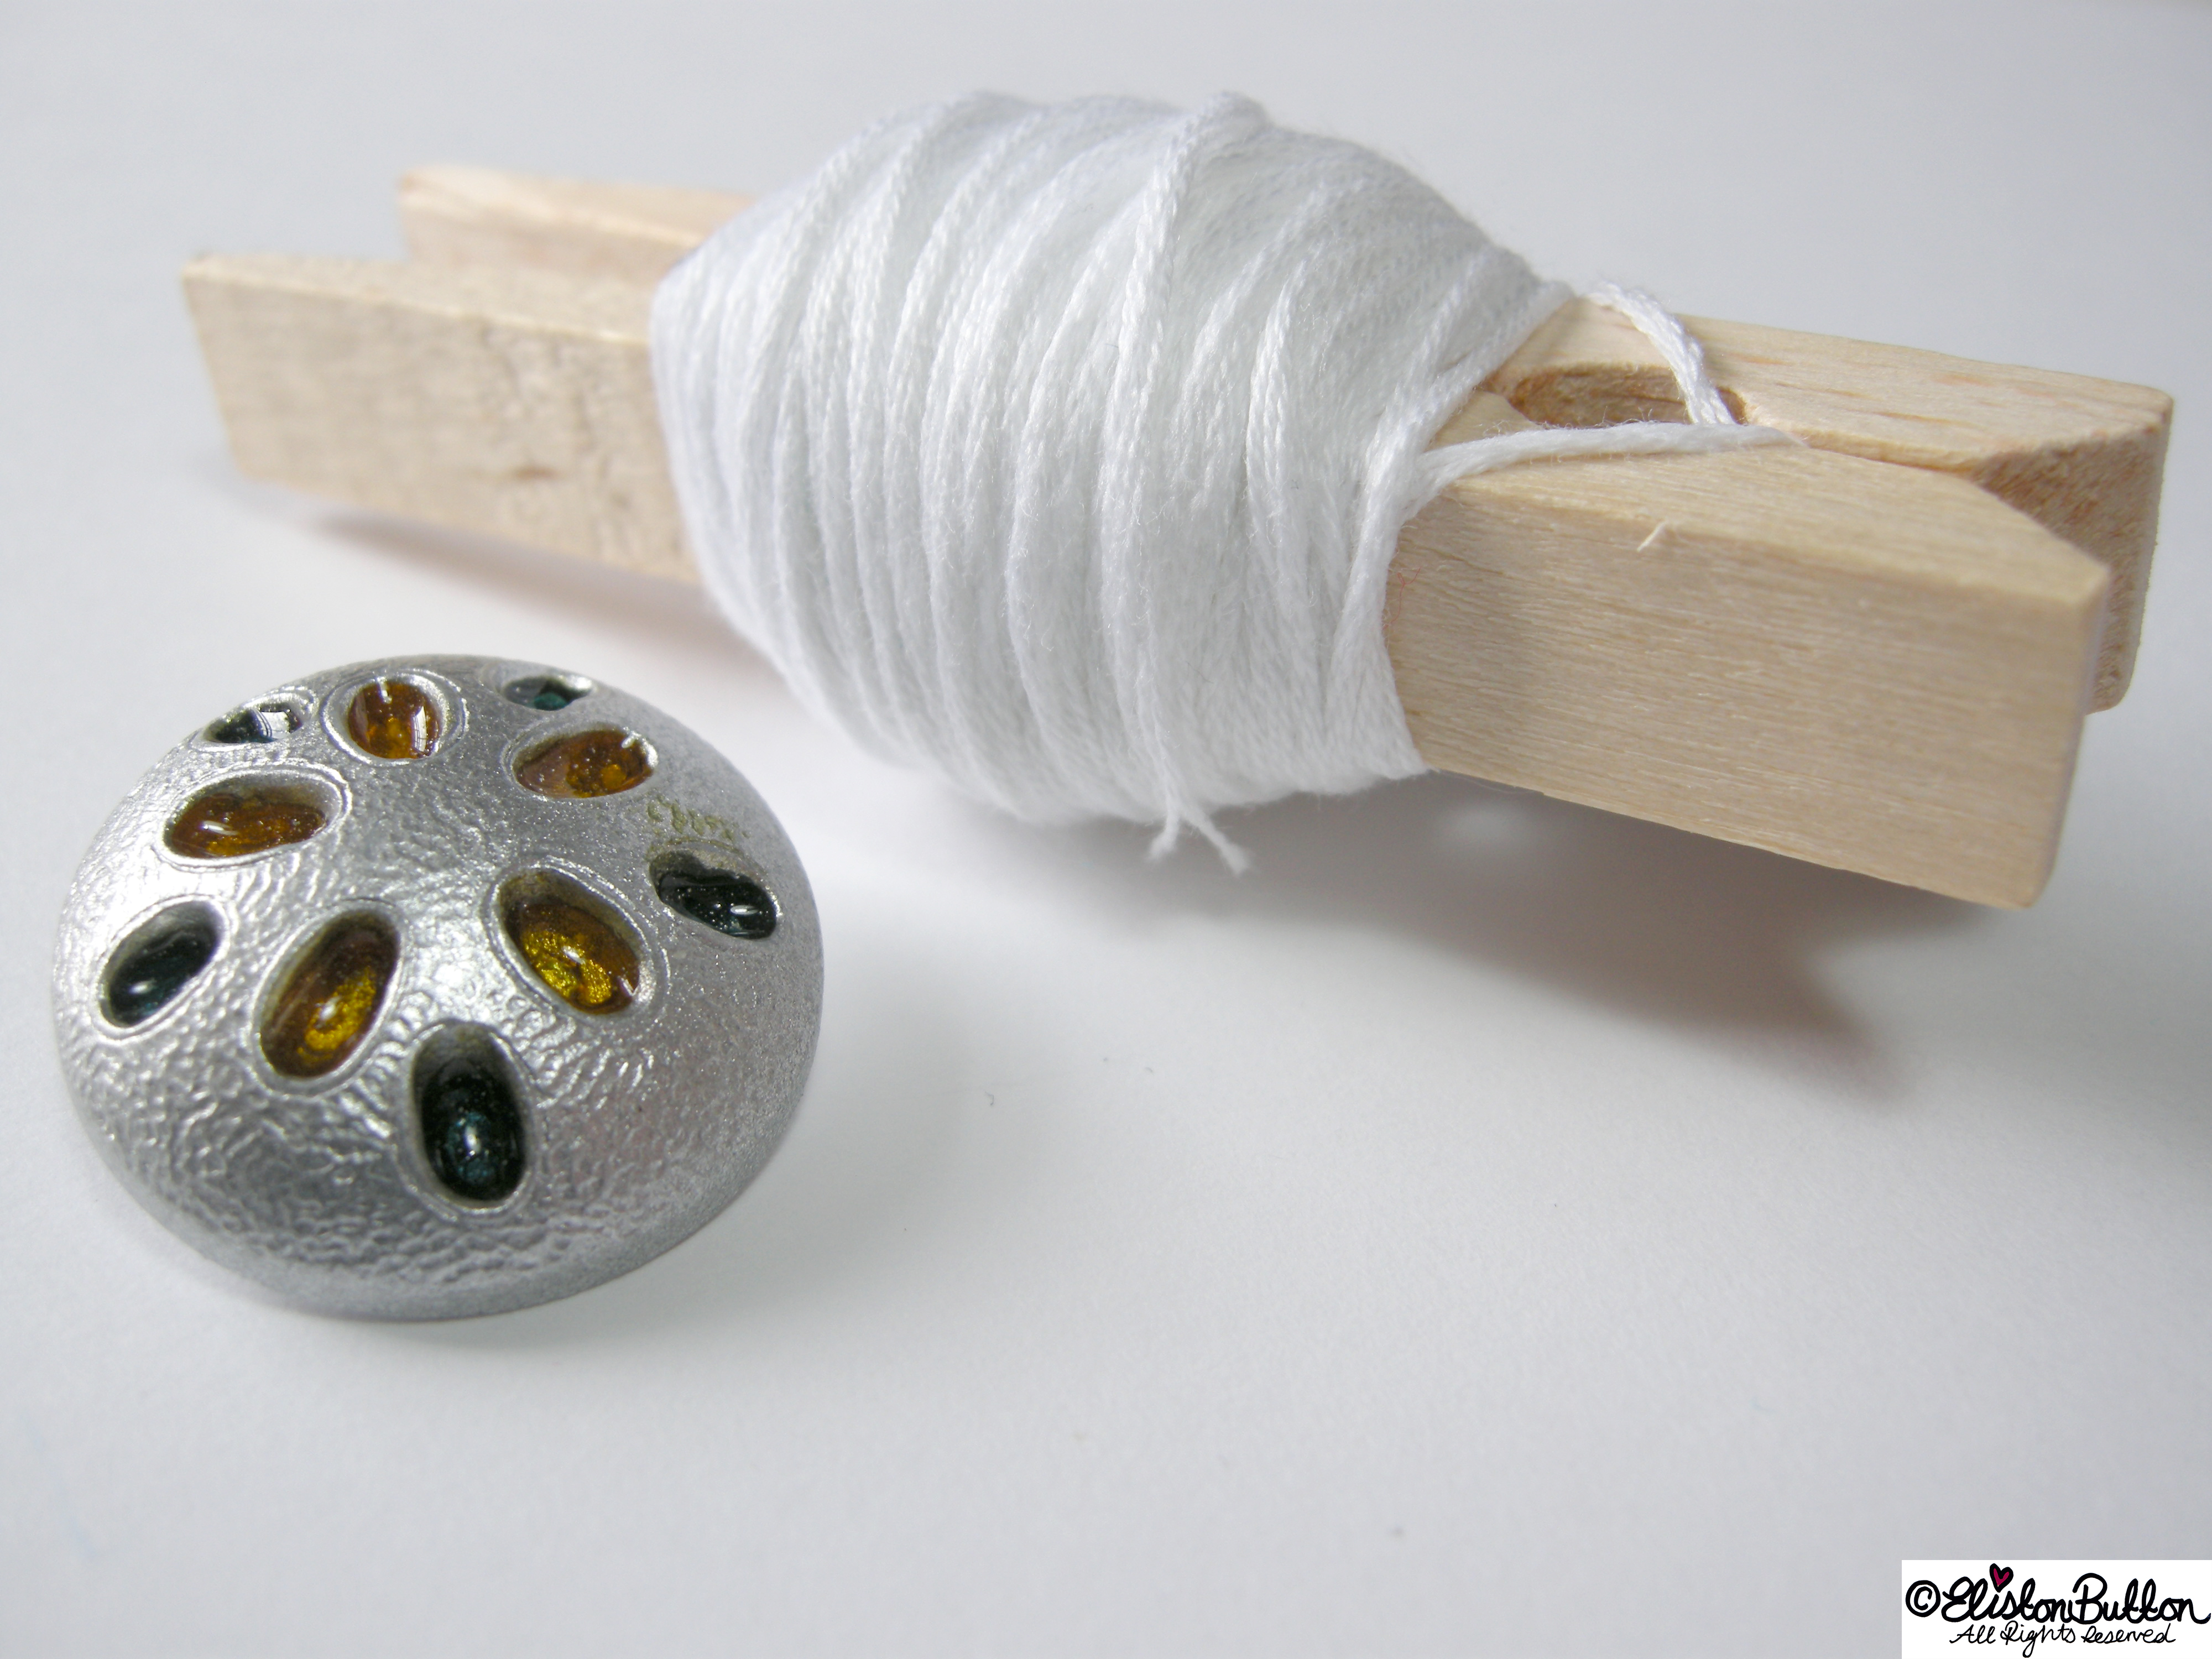 White Embroidery Thread and Silver Metal Button Centrepiece - 27 Before 27 – Peppermint at www.elistonbutton.com - Eliston Button - That Crafty Kid – Art, Design, Craft & Adventure.